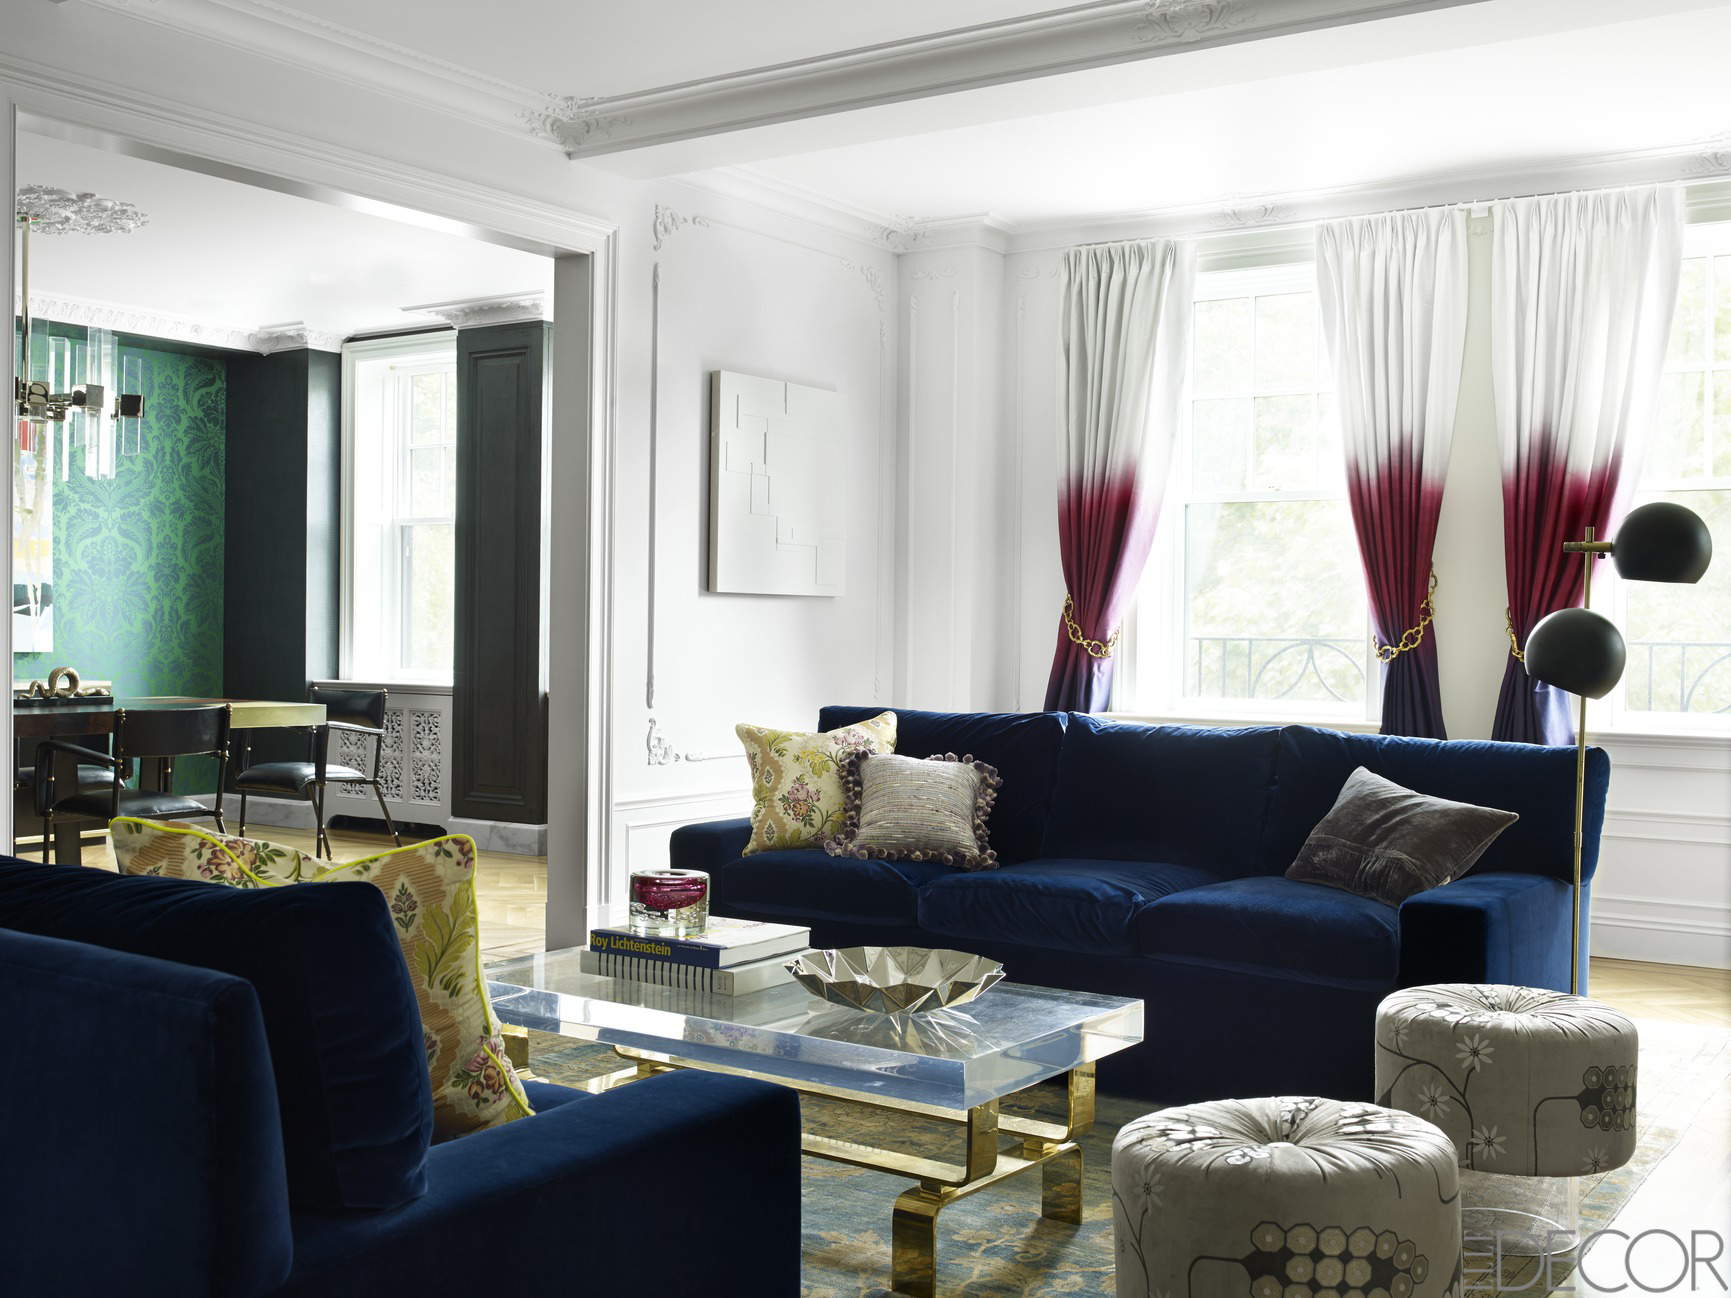 Blue Sofas And Glass Top Coffee Table Inside Fancy Room With Sensational Living  Room Curtains